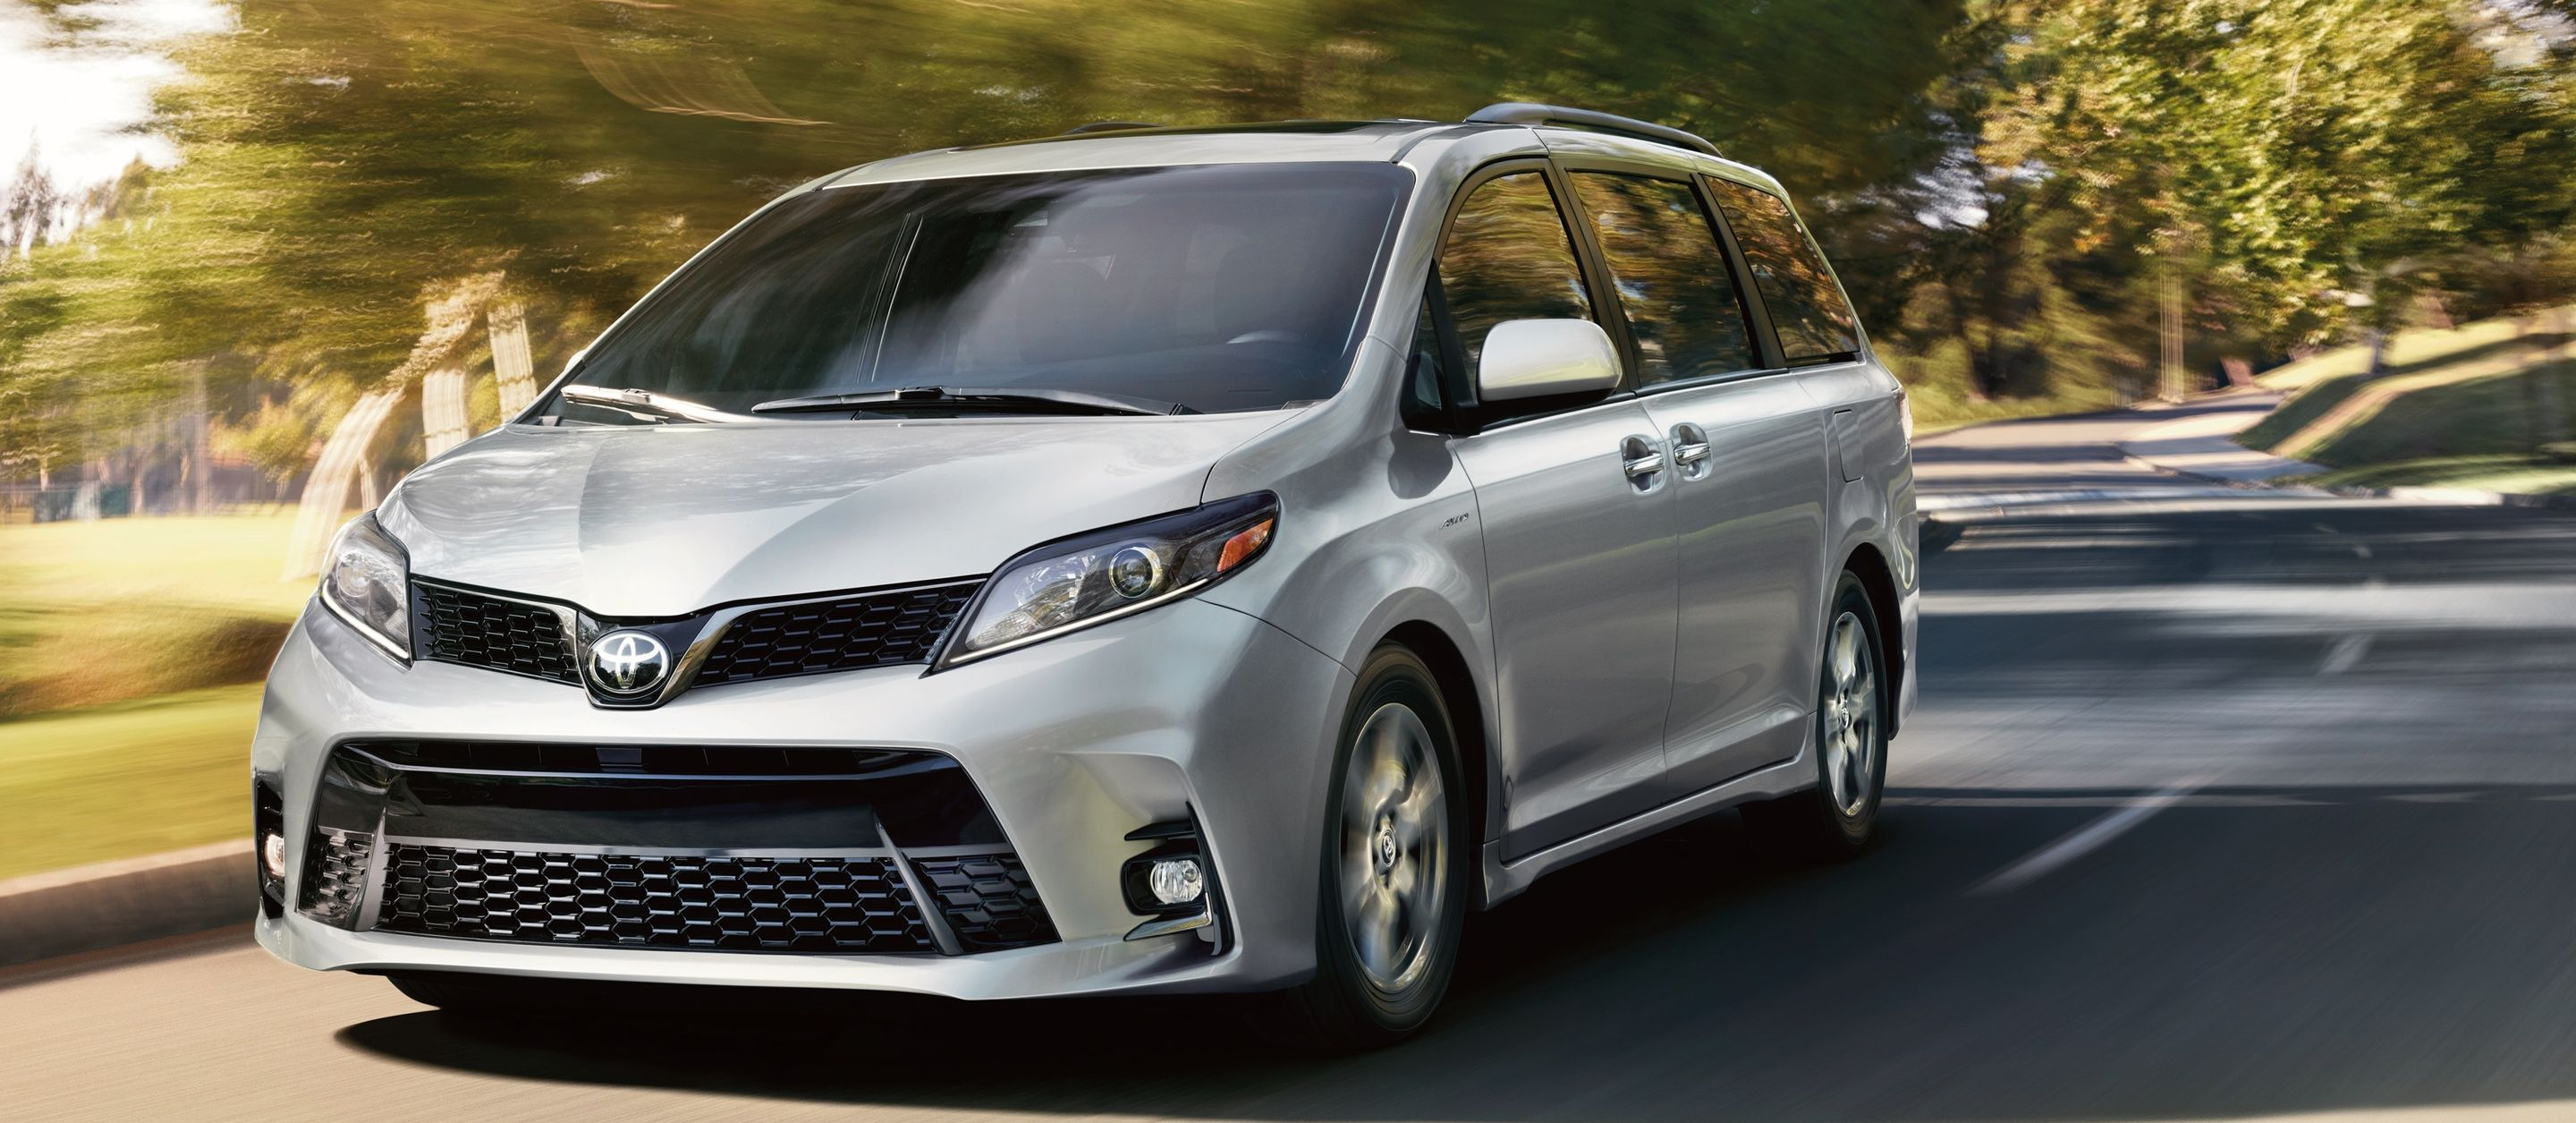 2020 Toyota Sienna Leasing near Loves Park, IL